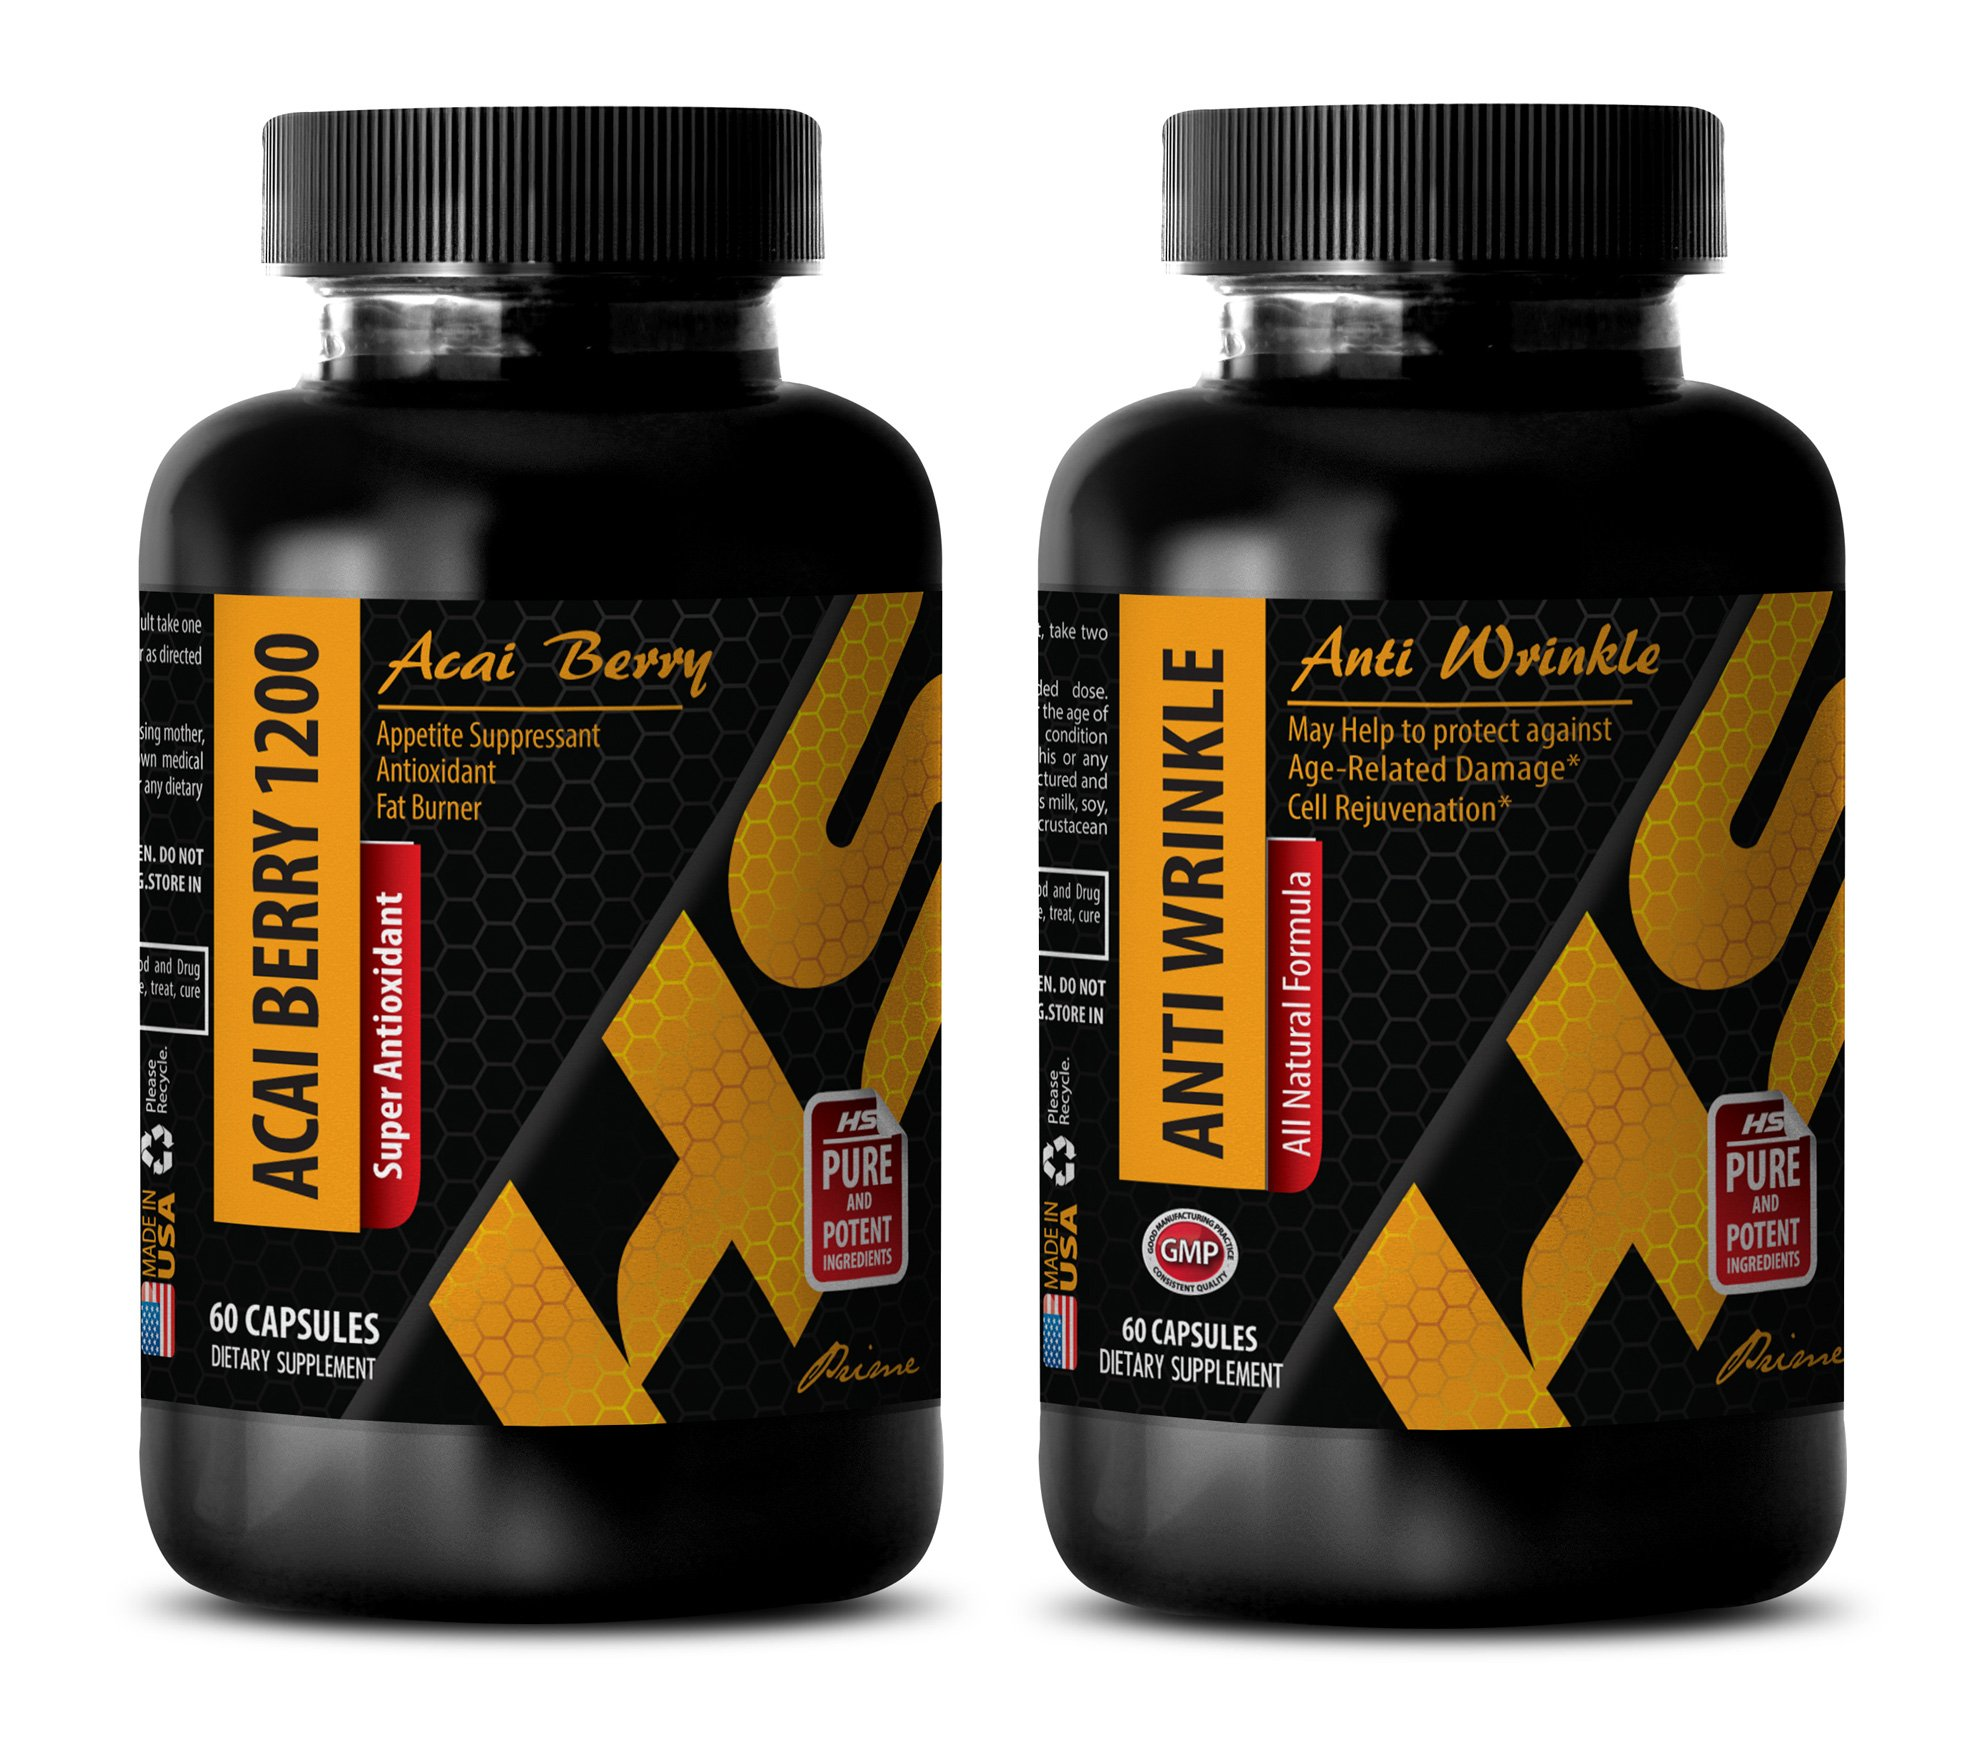 antiaging capsules - ACAI BERRY 1200 – ANTI WRINKLE - COMBO - coenzyme coq10 - 2 Bottles, (60+60 Capsules)